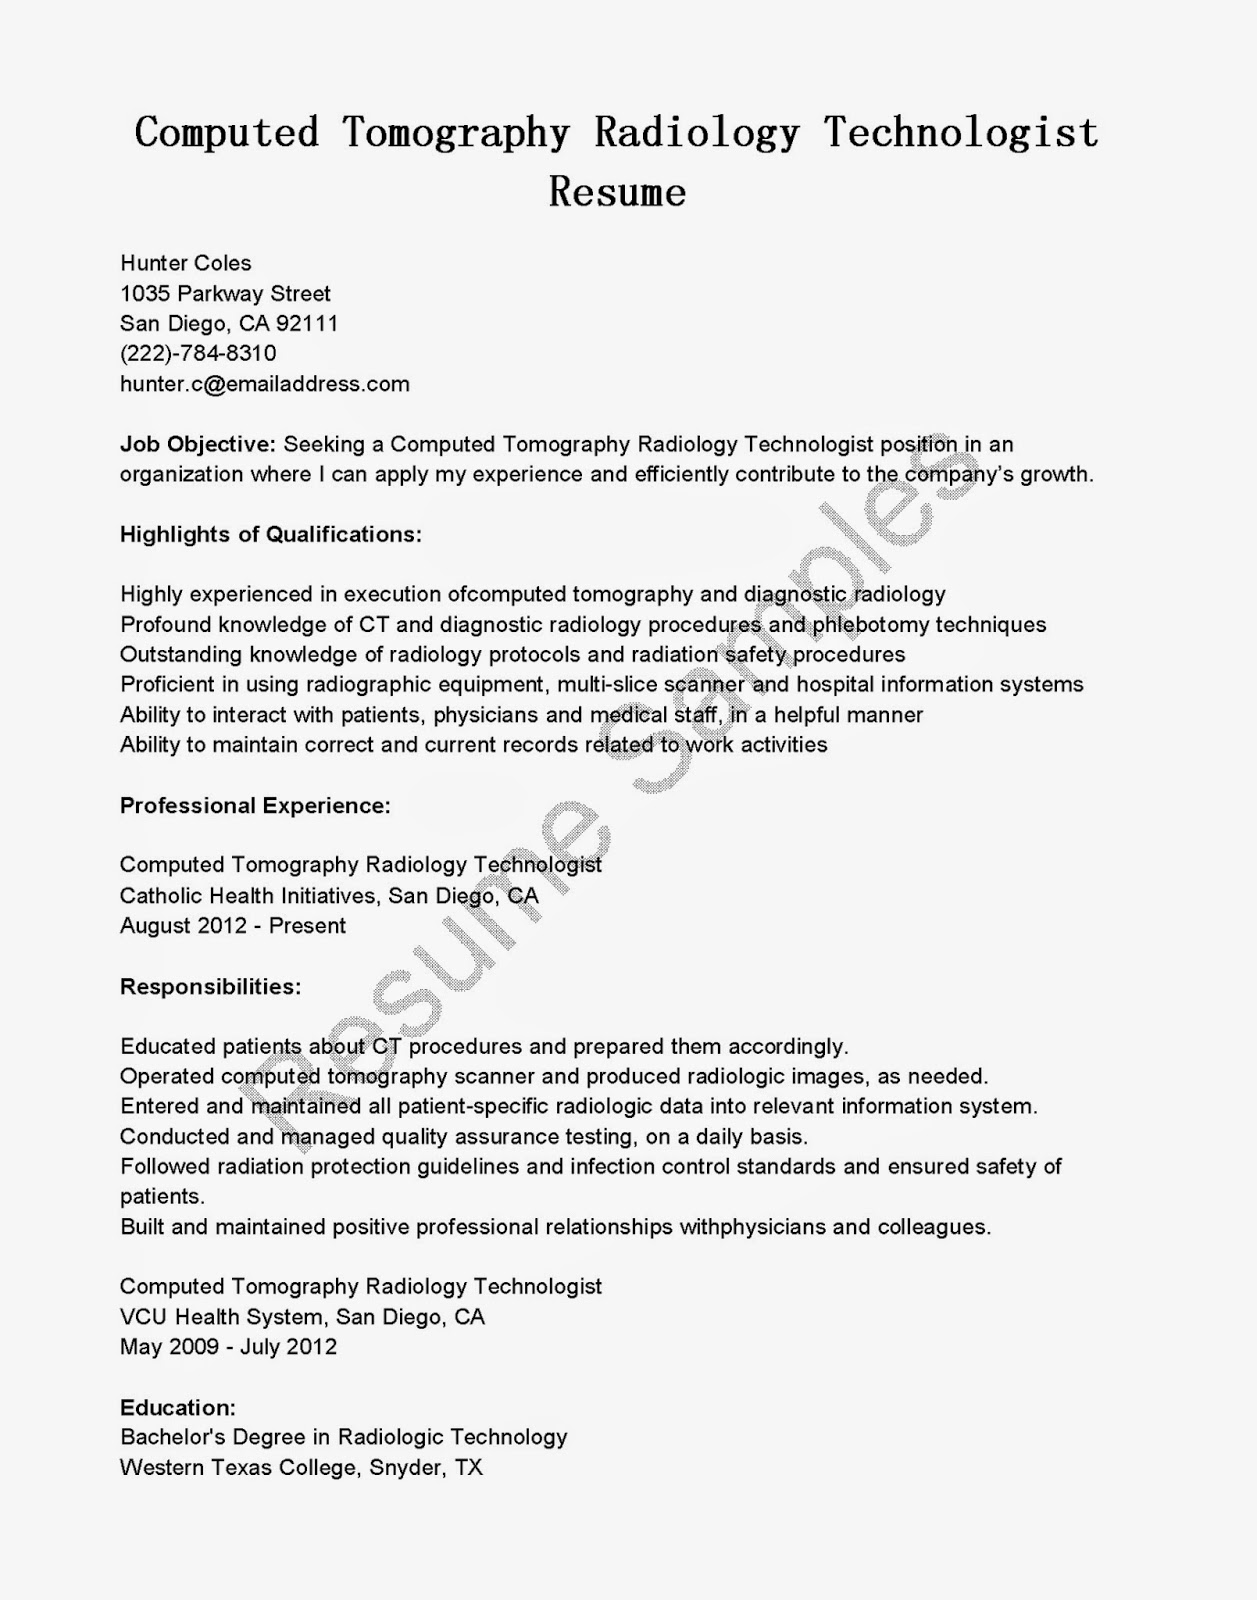 resume cover letter for radiologic technologist fresh graduate computed tomography Resume Resume For Radiologic Technologist Fresh Graduate